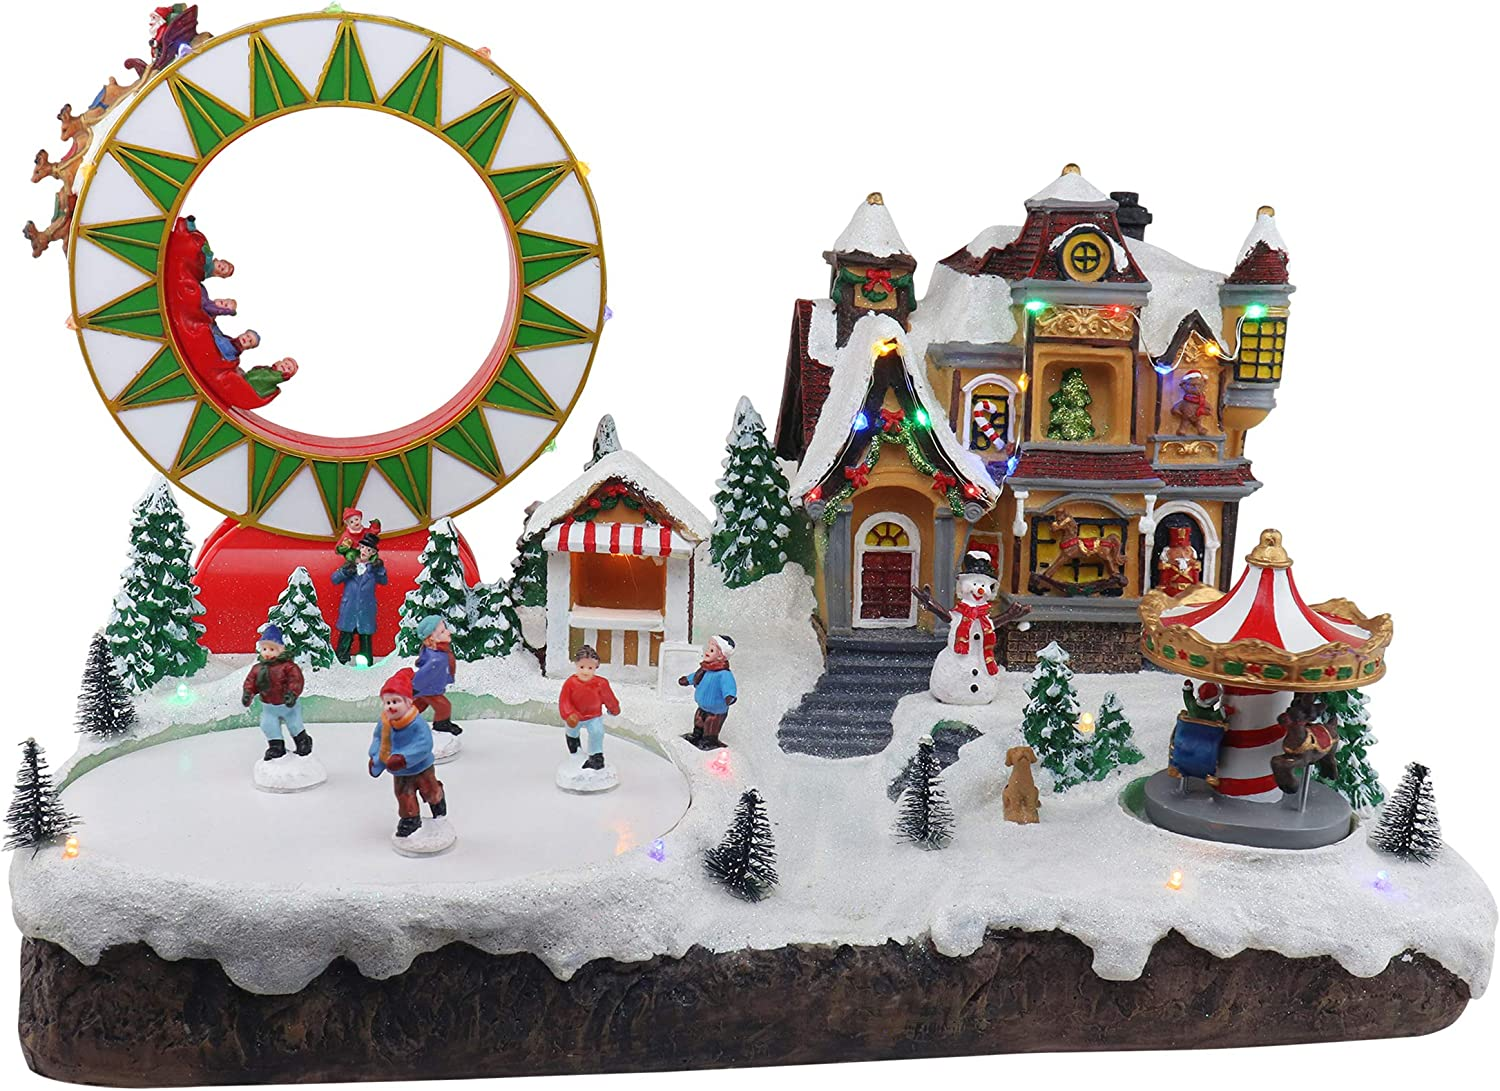 Christmas Village Grand Carnival | Animated Pre-lit Musical Snow Village with Moving Skaters, Santa Reindeer Sleigh, Merry Go Round & Ferris Wheel | Christmas Indoor Decoration & Christmas Display